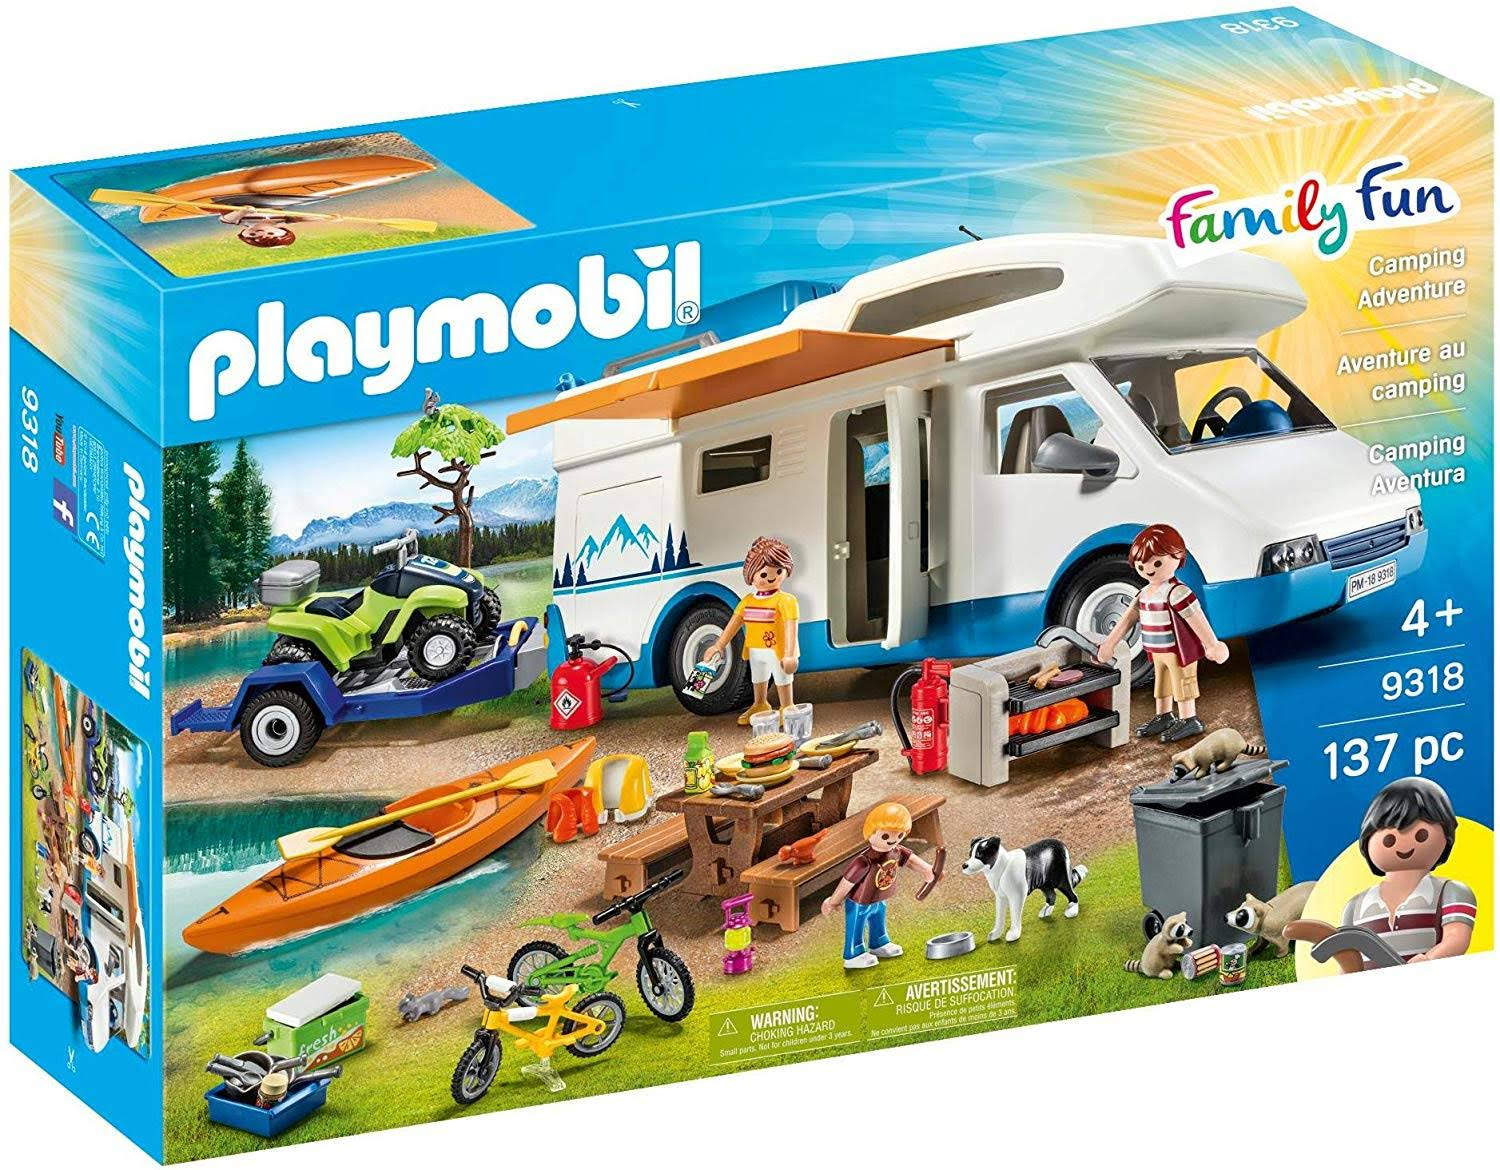 Playmobil 9318 Family Fun Camping Adventure Set